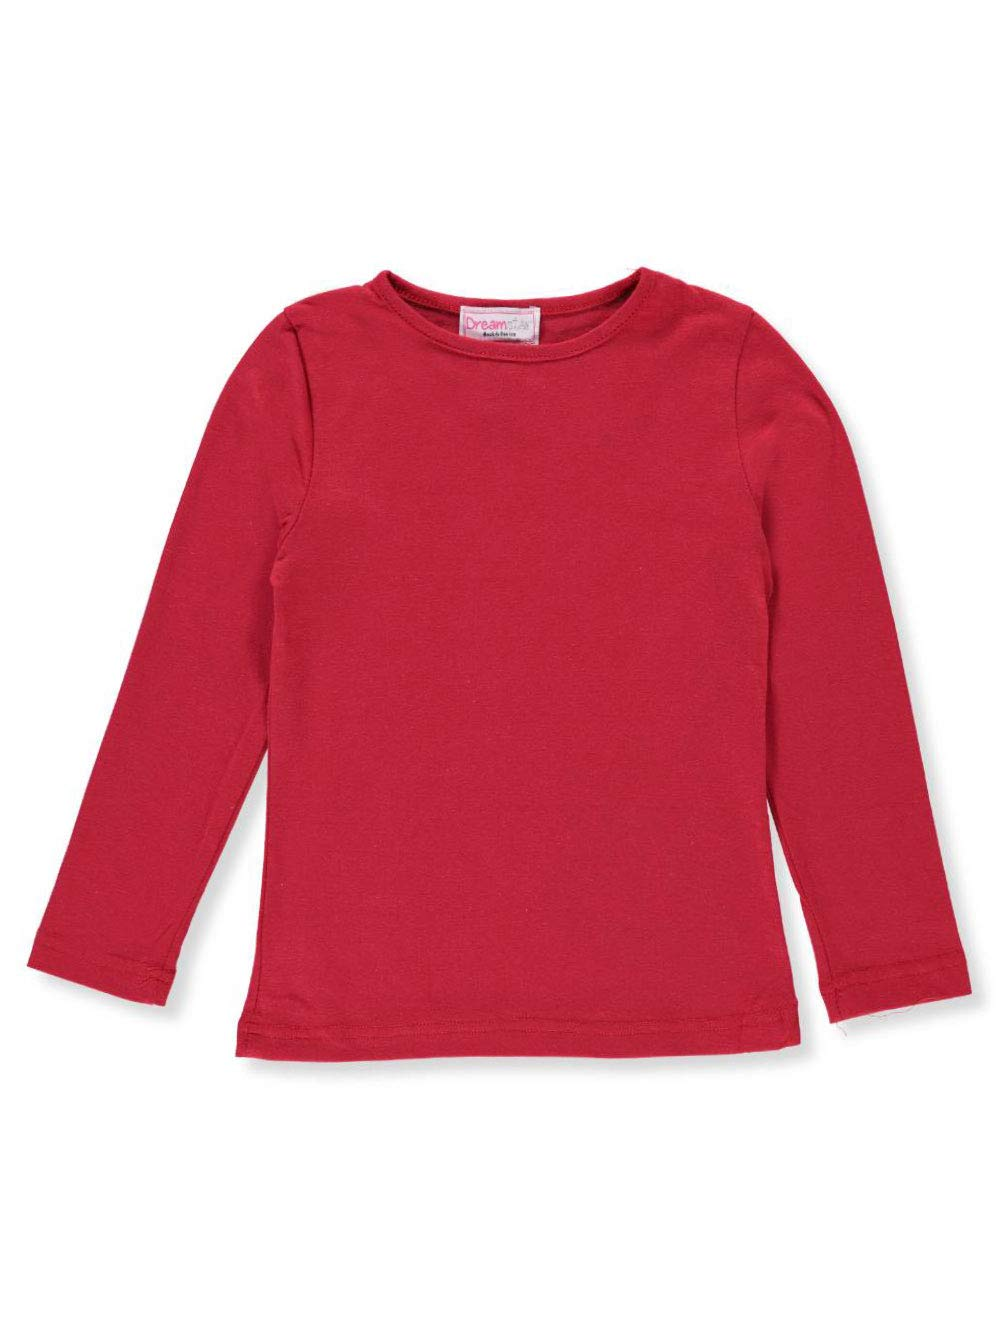 Dream Star Girls' L/S Top Dream Star Girls' L/S Top